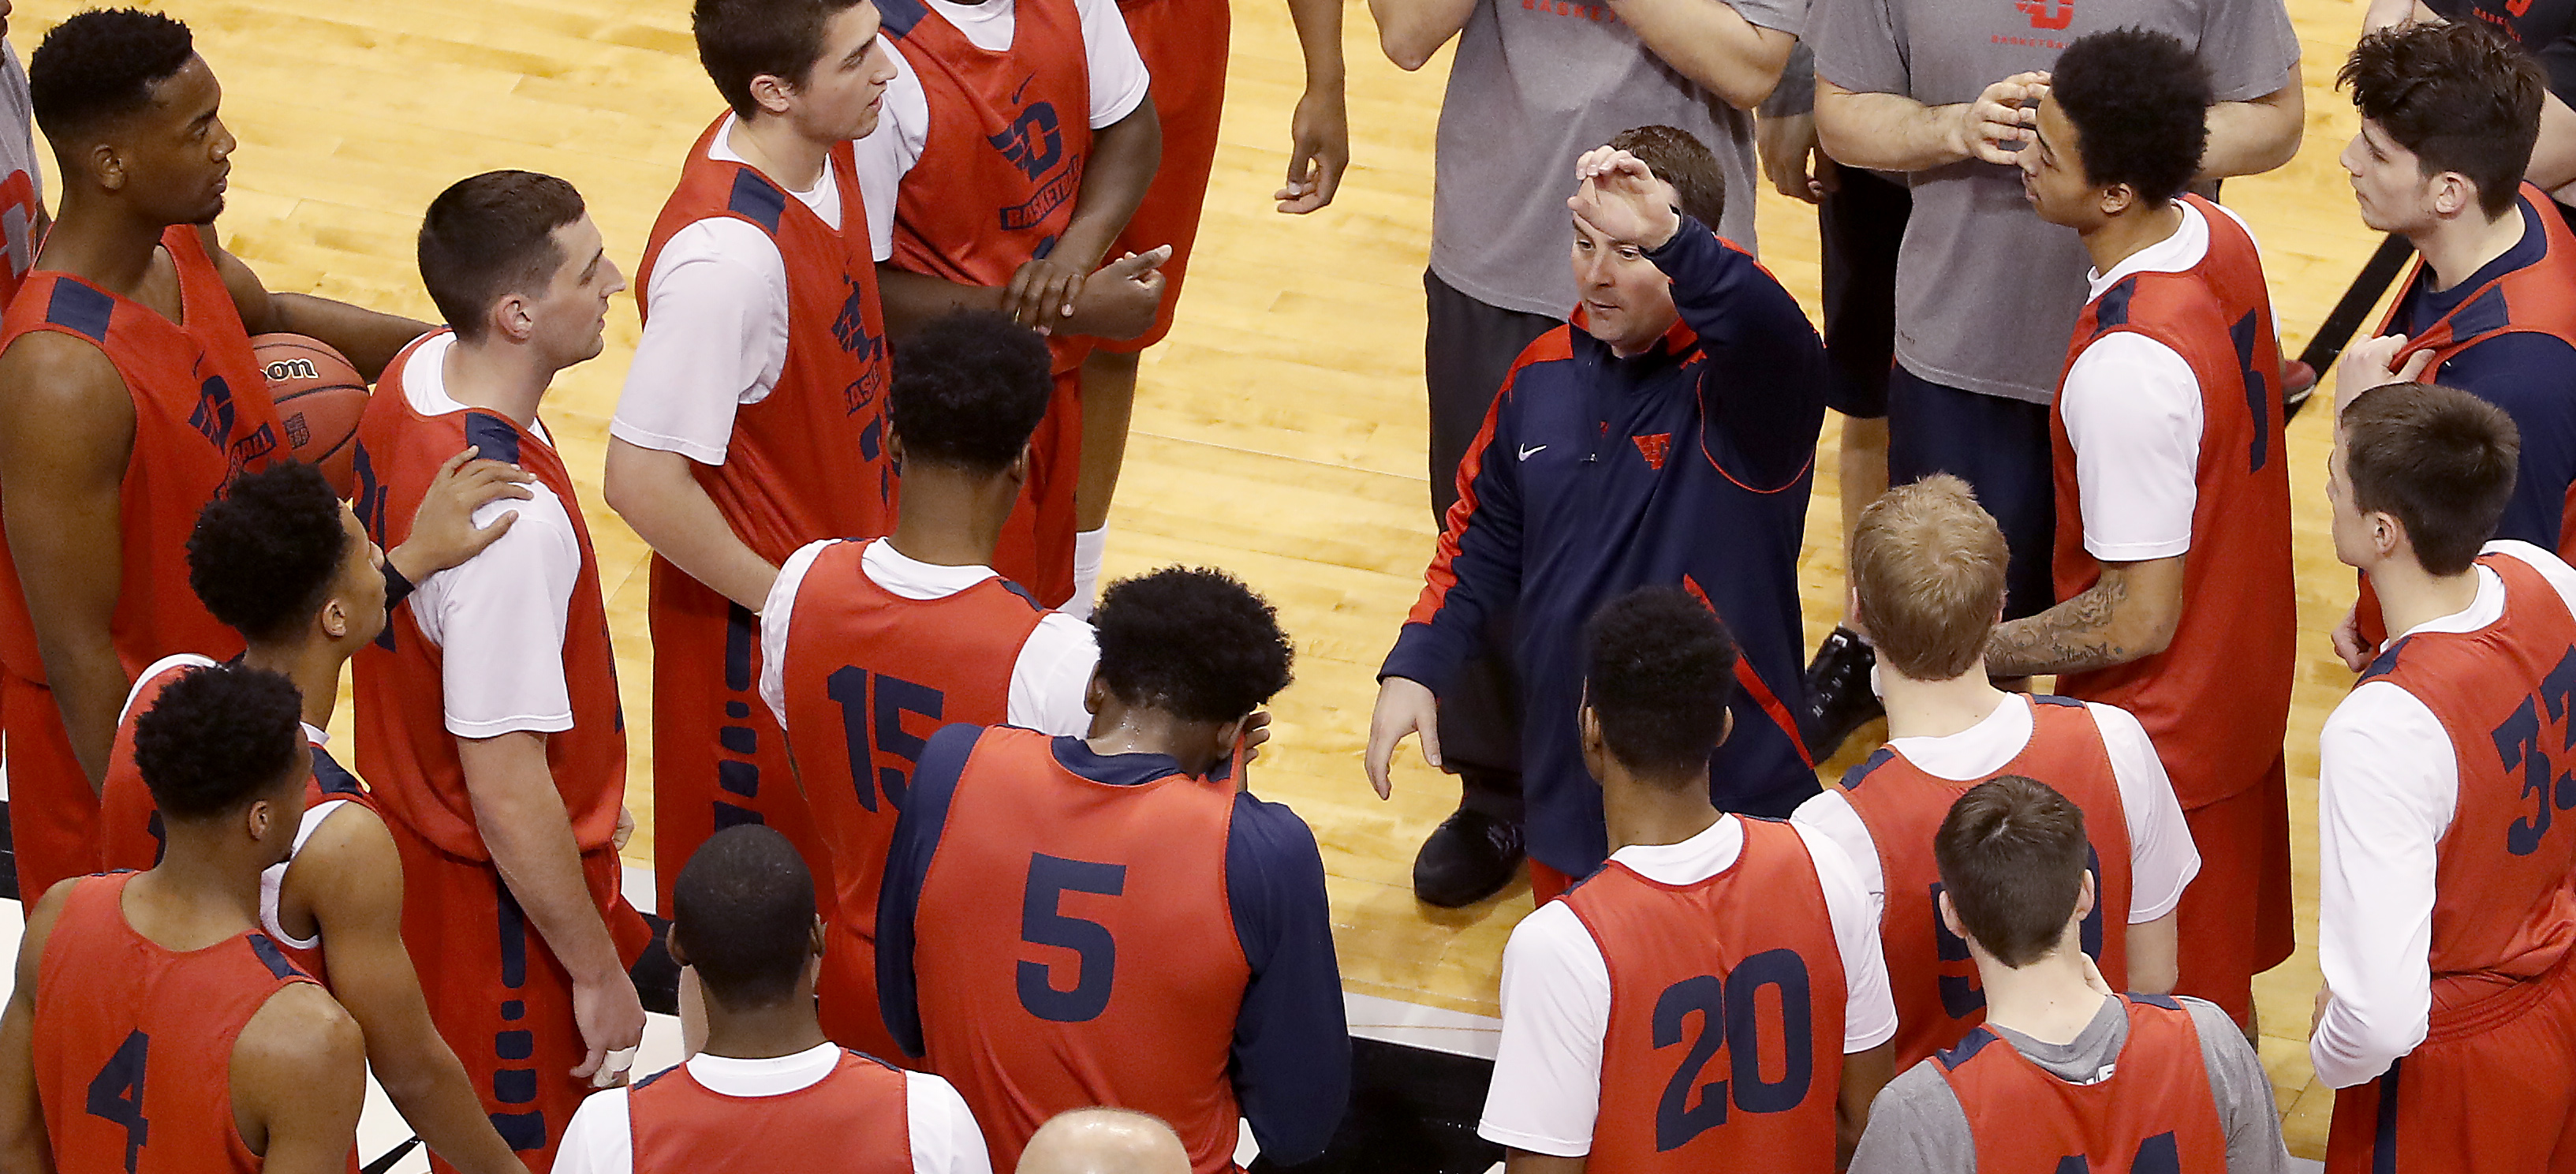 Dayton head coach Archie Miller talks to his players during practice ahead of a first-round men's college basketball game in the NCAA Tournament, Thursday, March 17, 2016, in St. Louis. Dayton plays Syracuse on Friday. (AP Photo/Charlie Riedel)